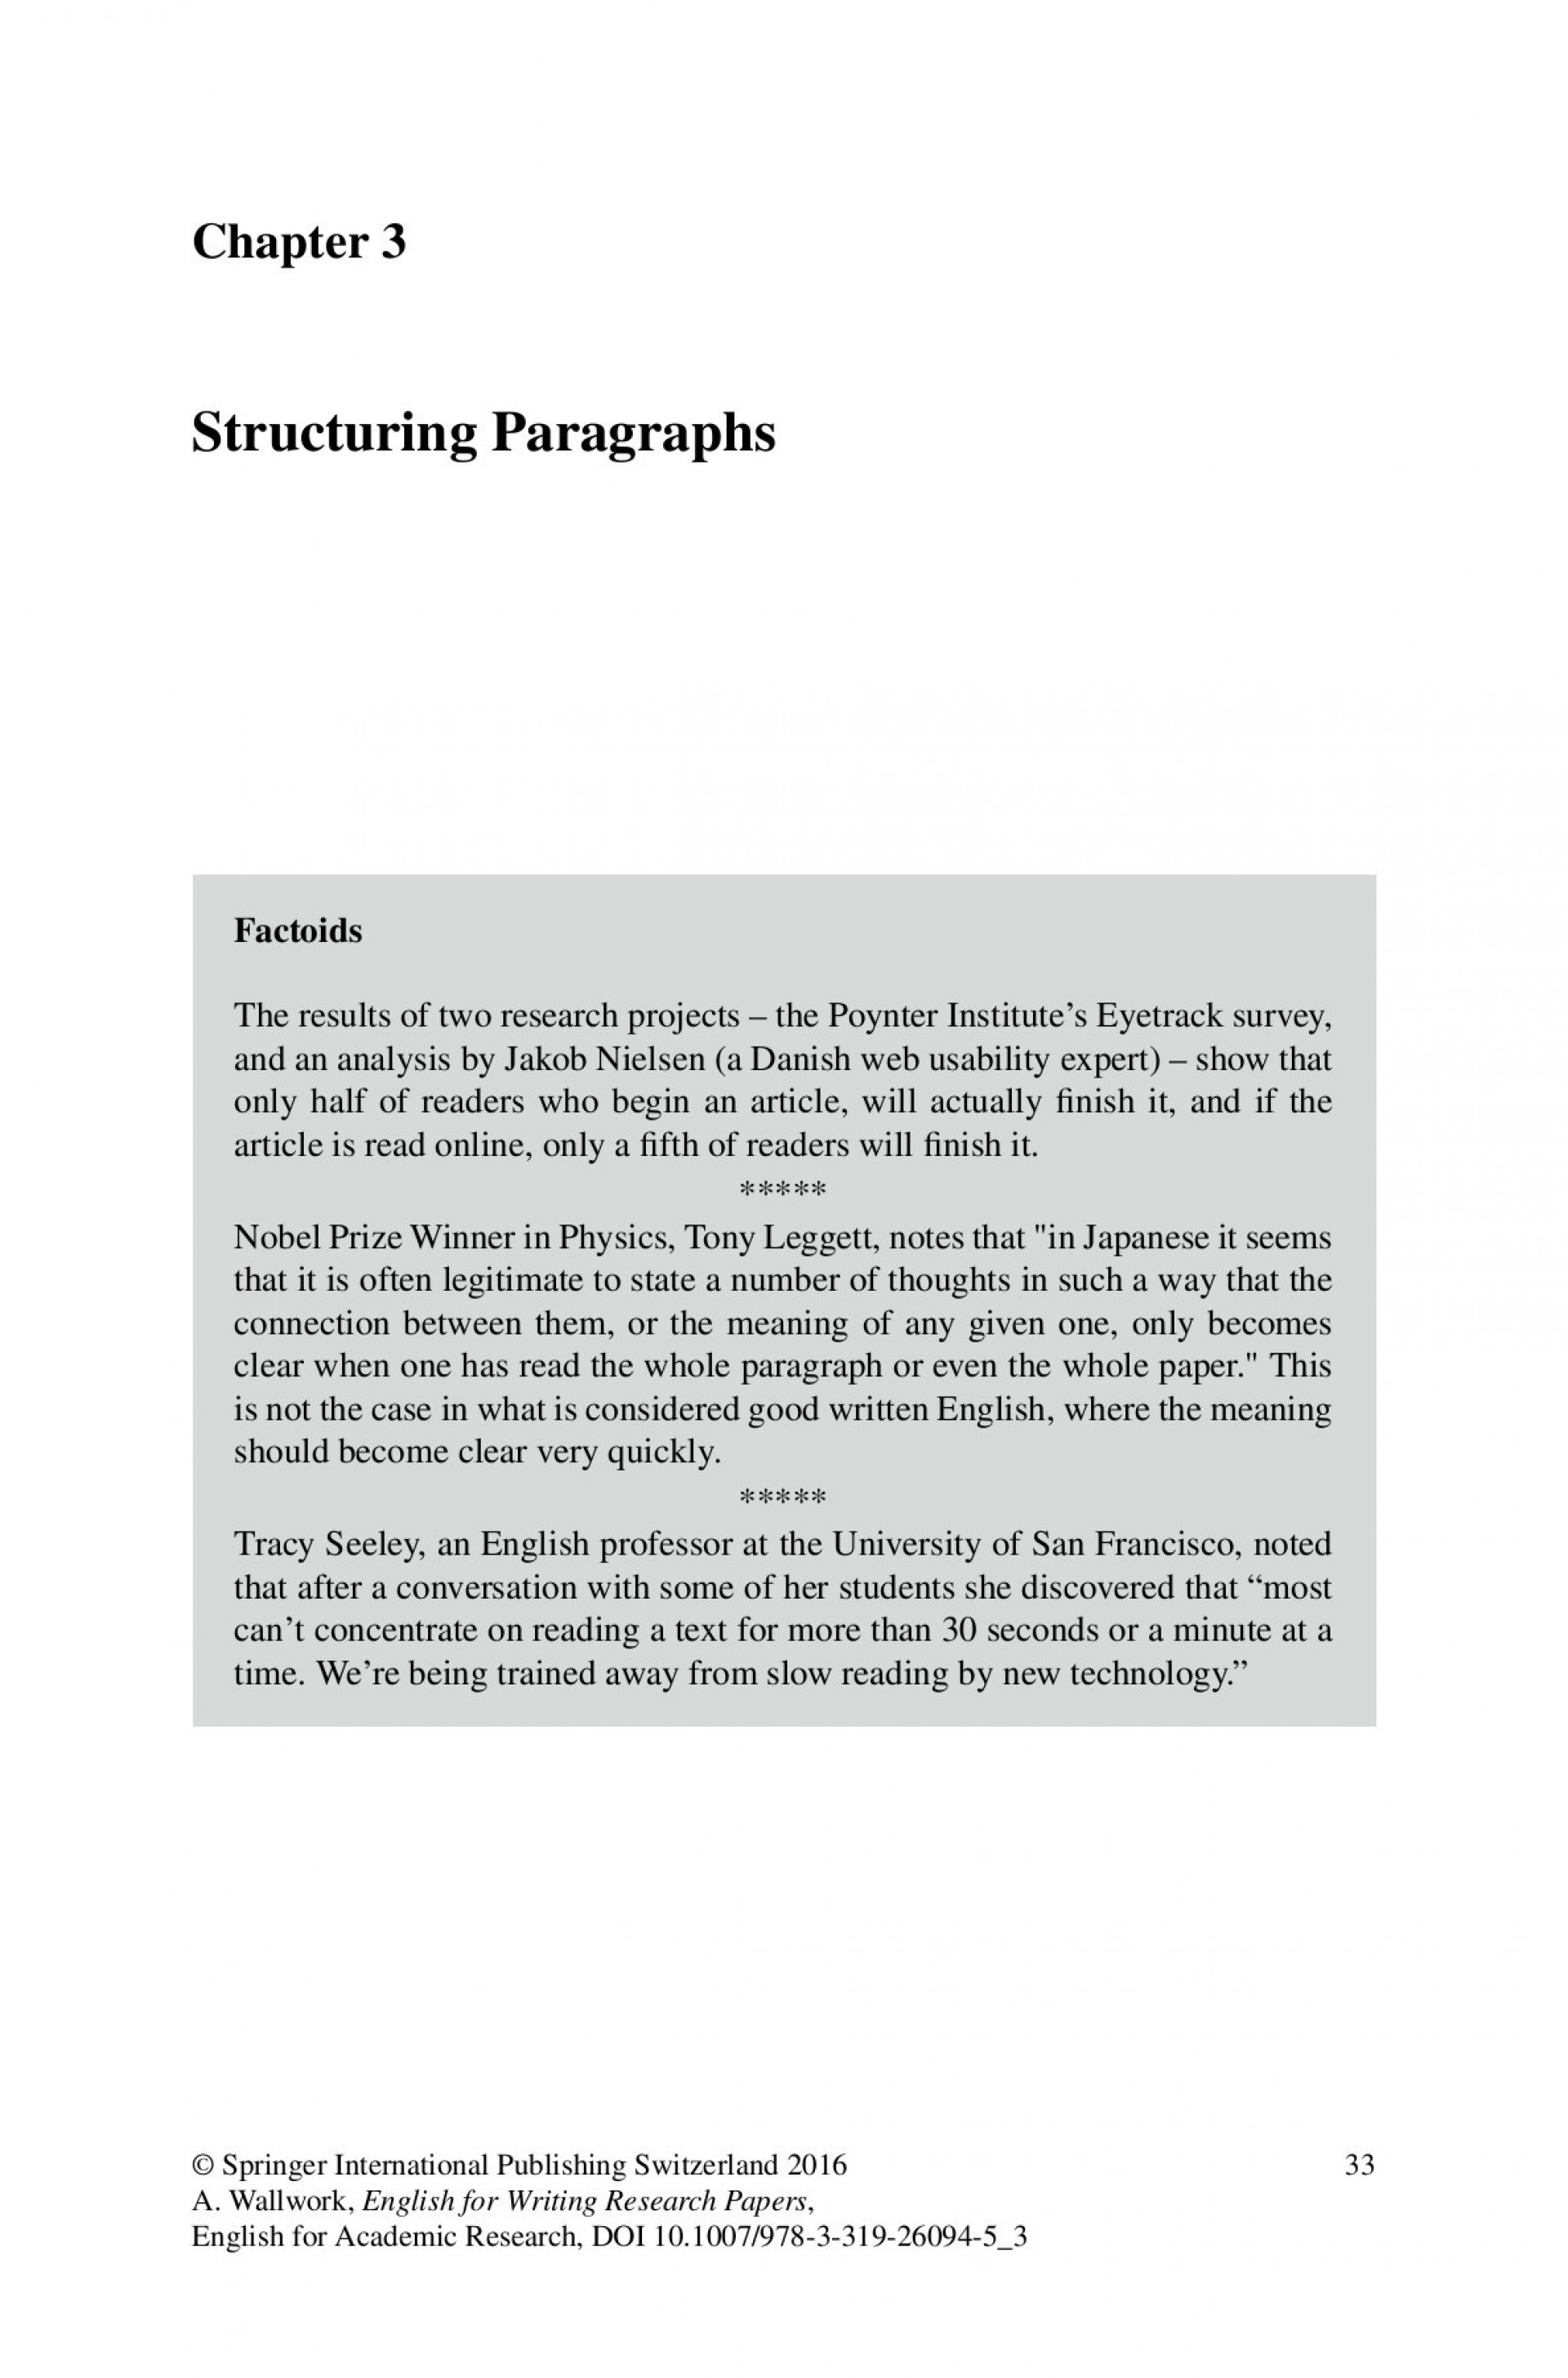 004 Research Paper English For Writing Papers Springer Awesome Pdf Useful Phrases - 1920